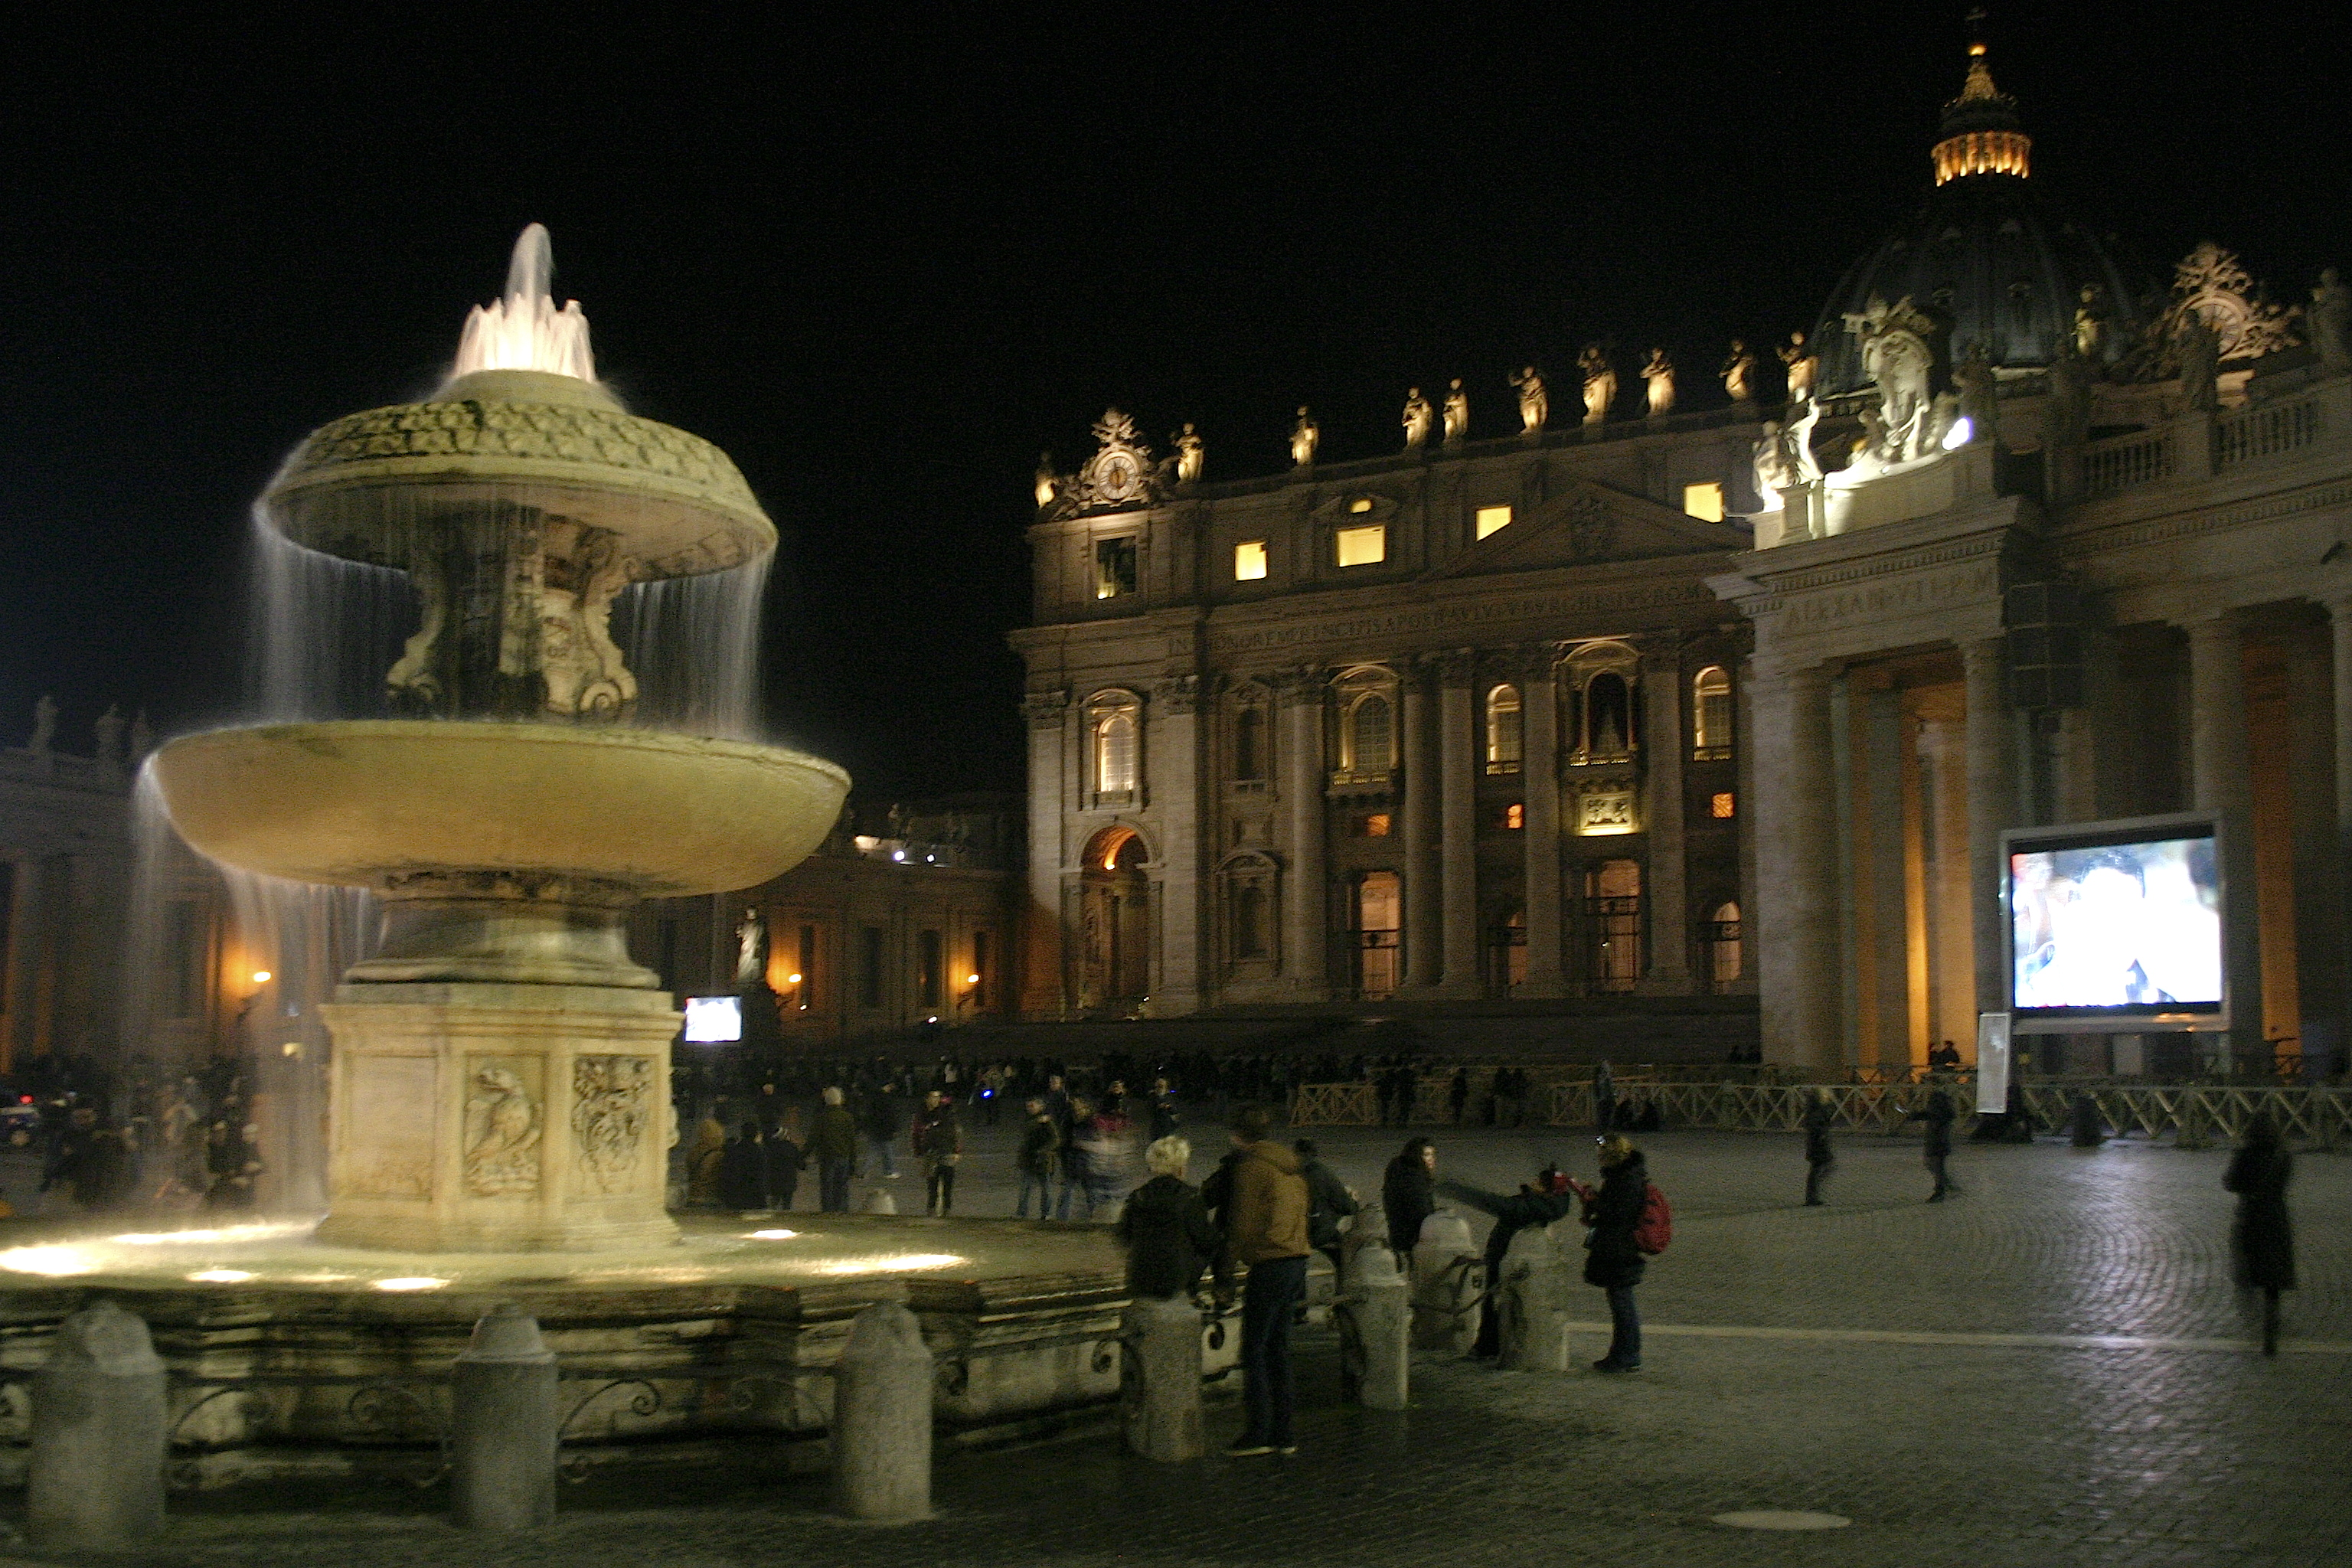 Vatican st peter square at night with fountain